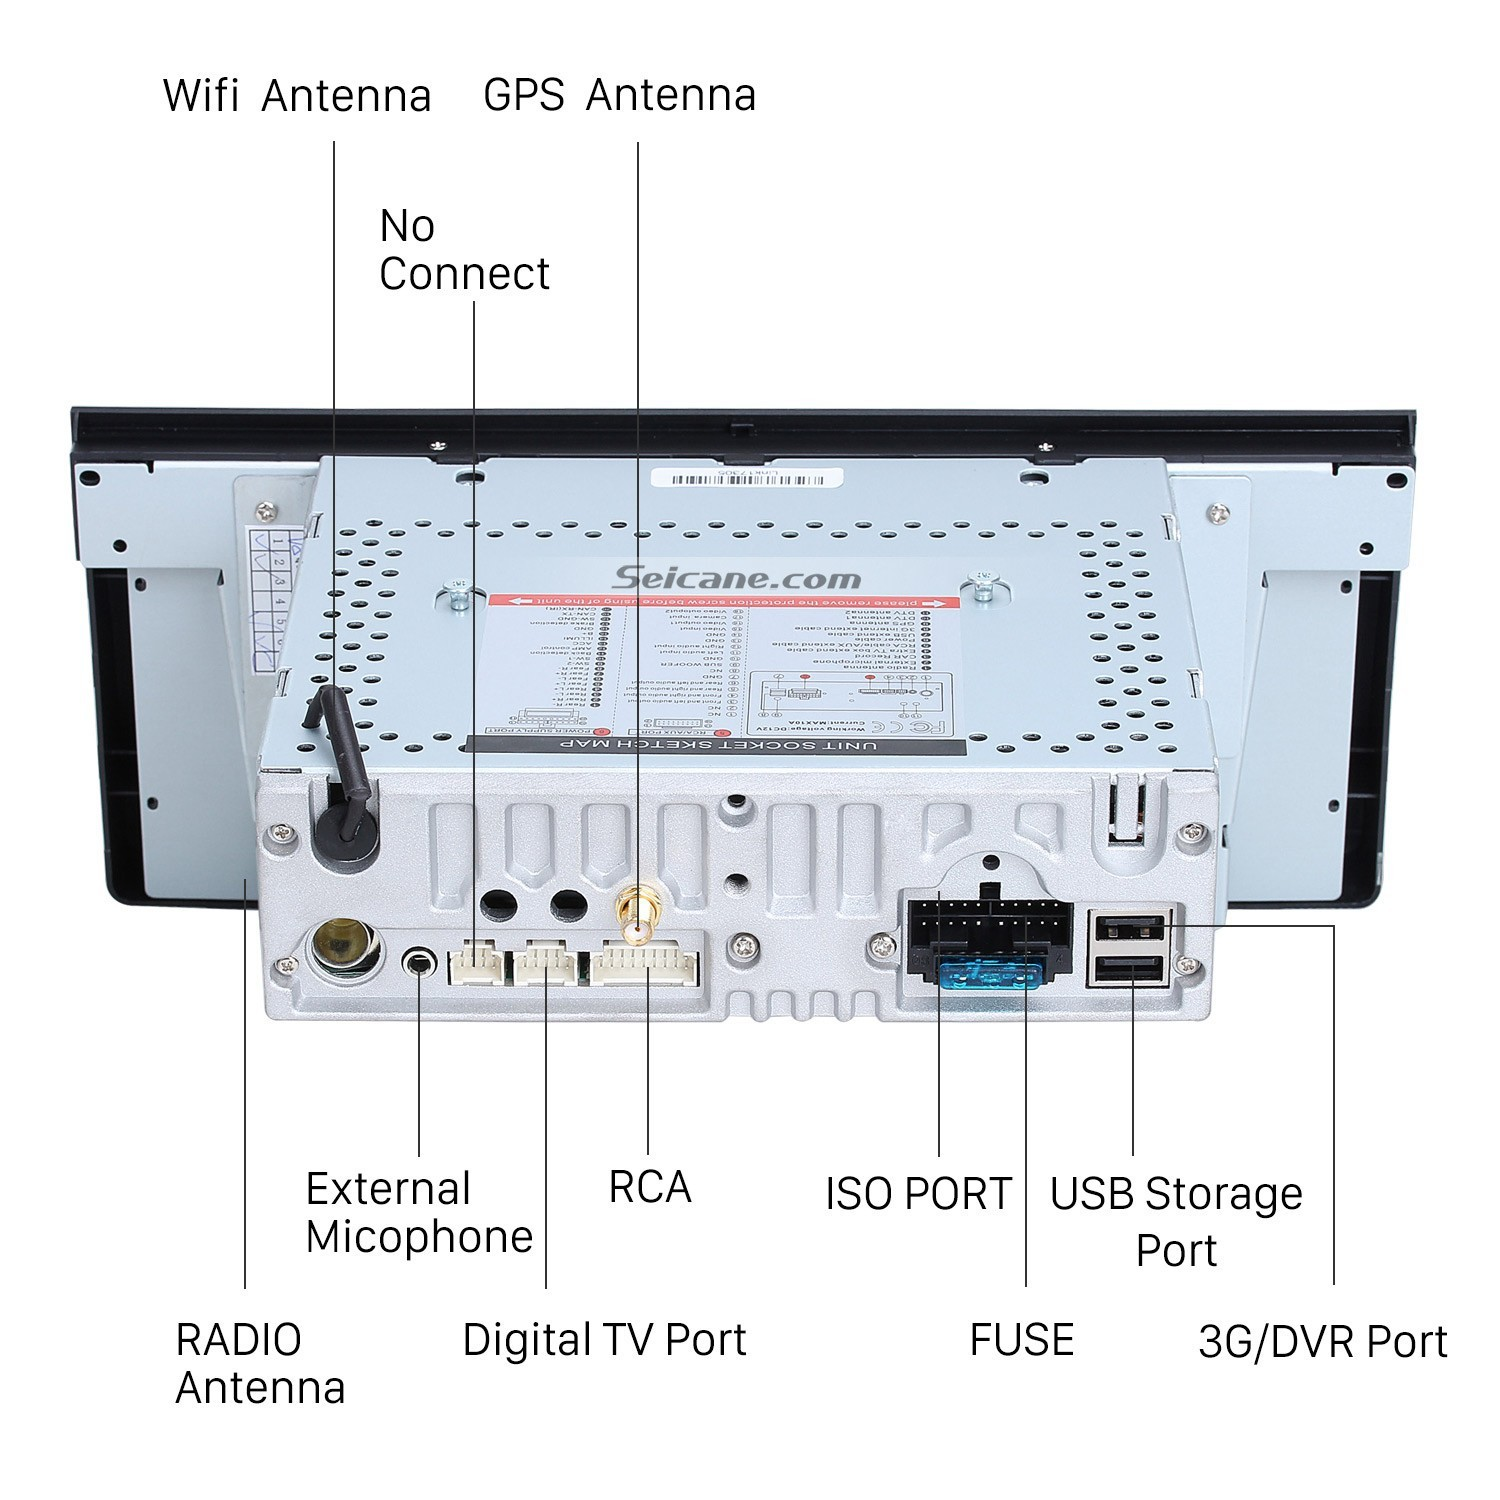 Cable Tv Wiring Diagrams Amplifier Wiring Diagram New Cheap All In E android 6 0 2000 2007 Of Cable Tv Wiring Diagrams